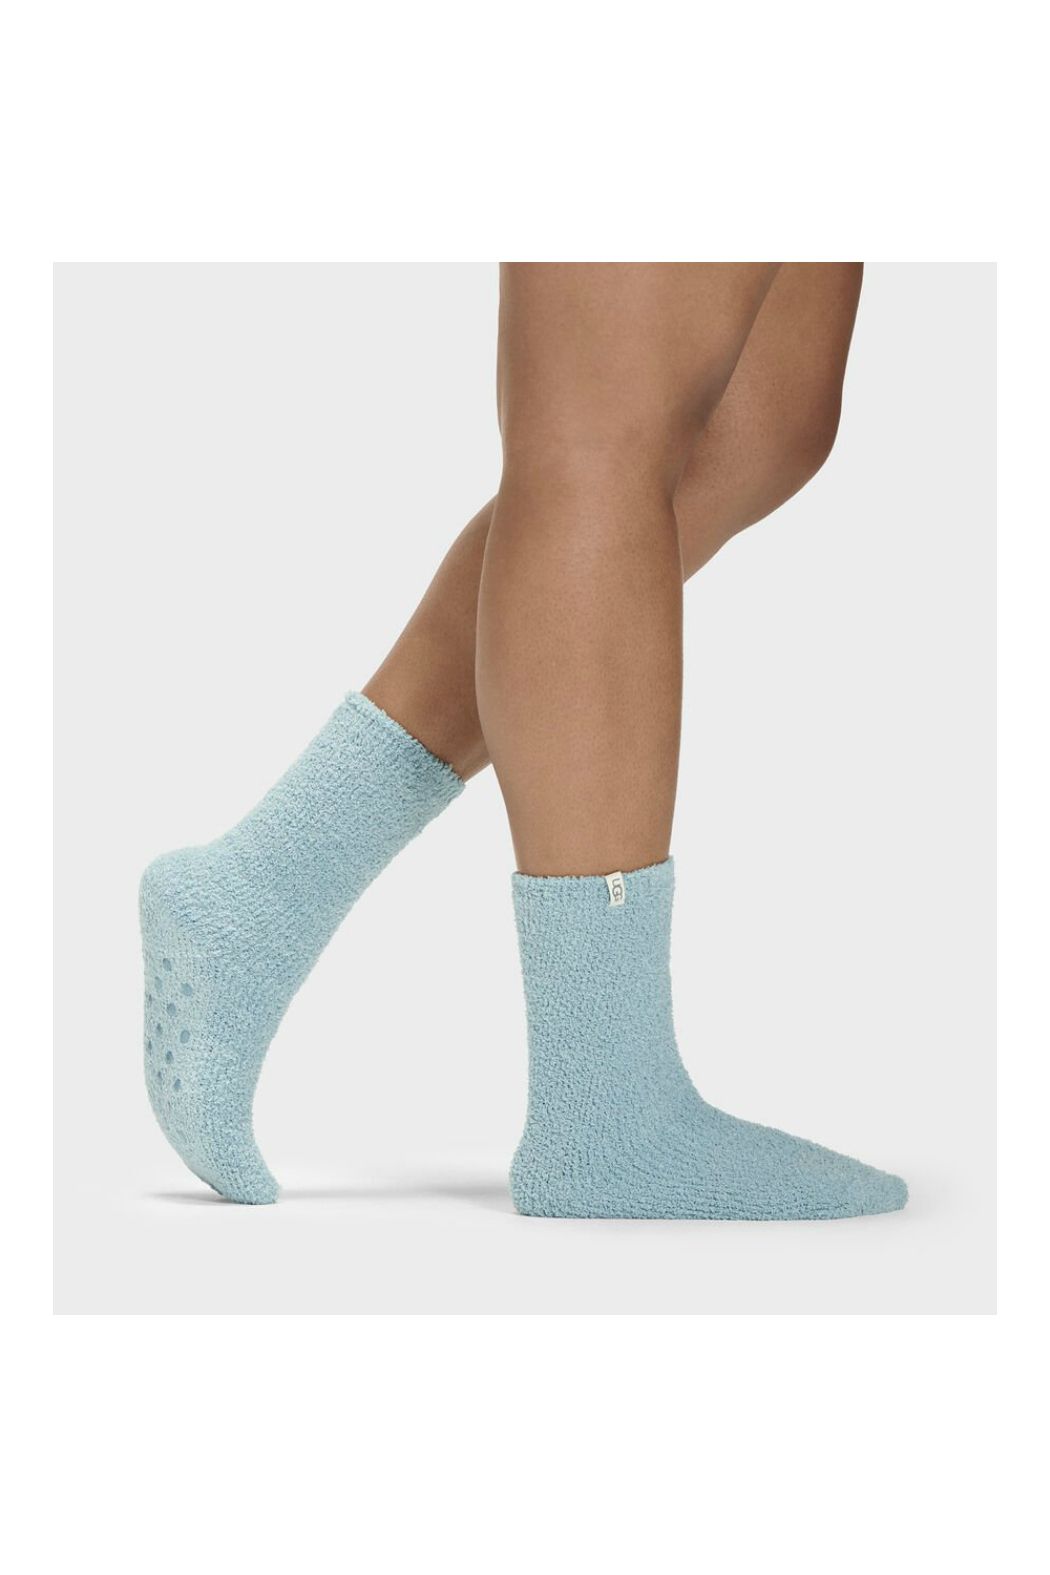 Ugg ALICE COZY GRIPPER SOCK - Front Cropped Image